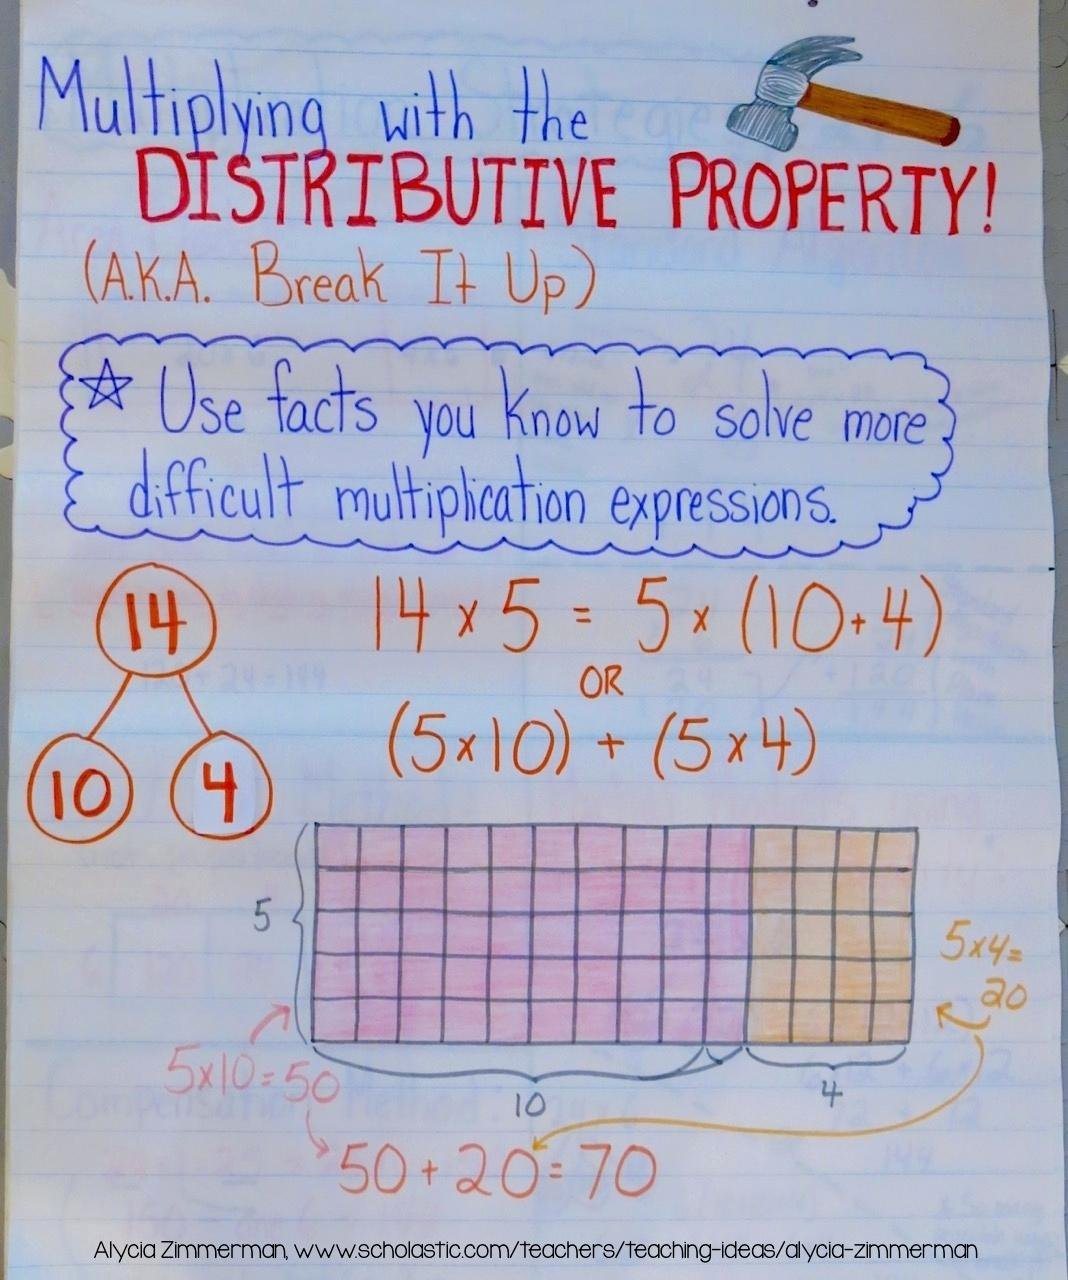 Factoring Distributive Property Worksheet Best Of Factoring Using the Distributive Property Worksheet 10 2